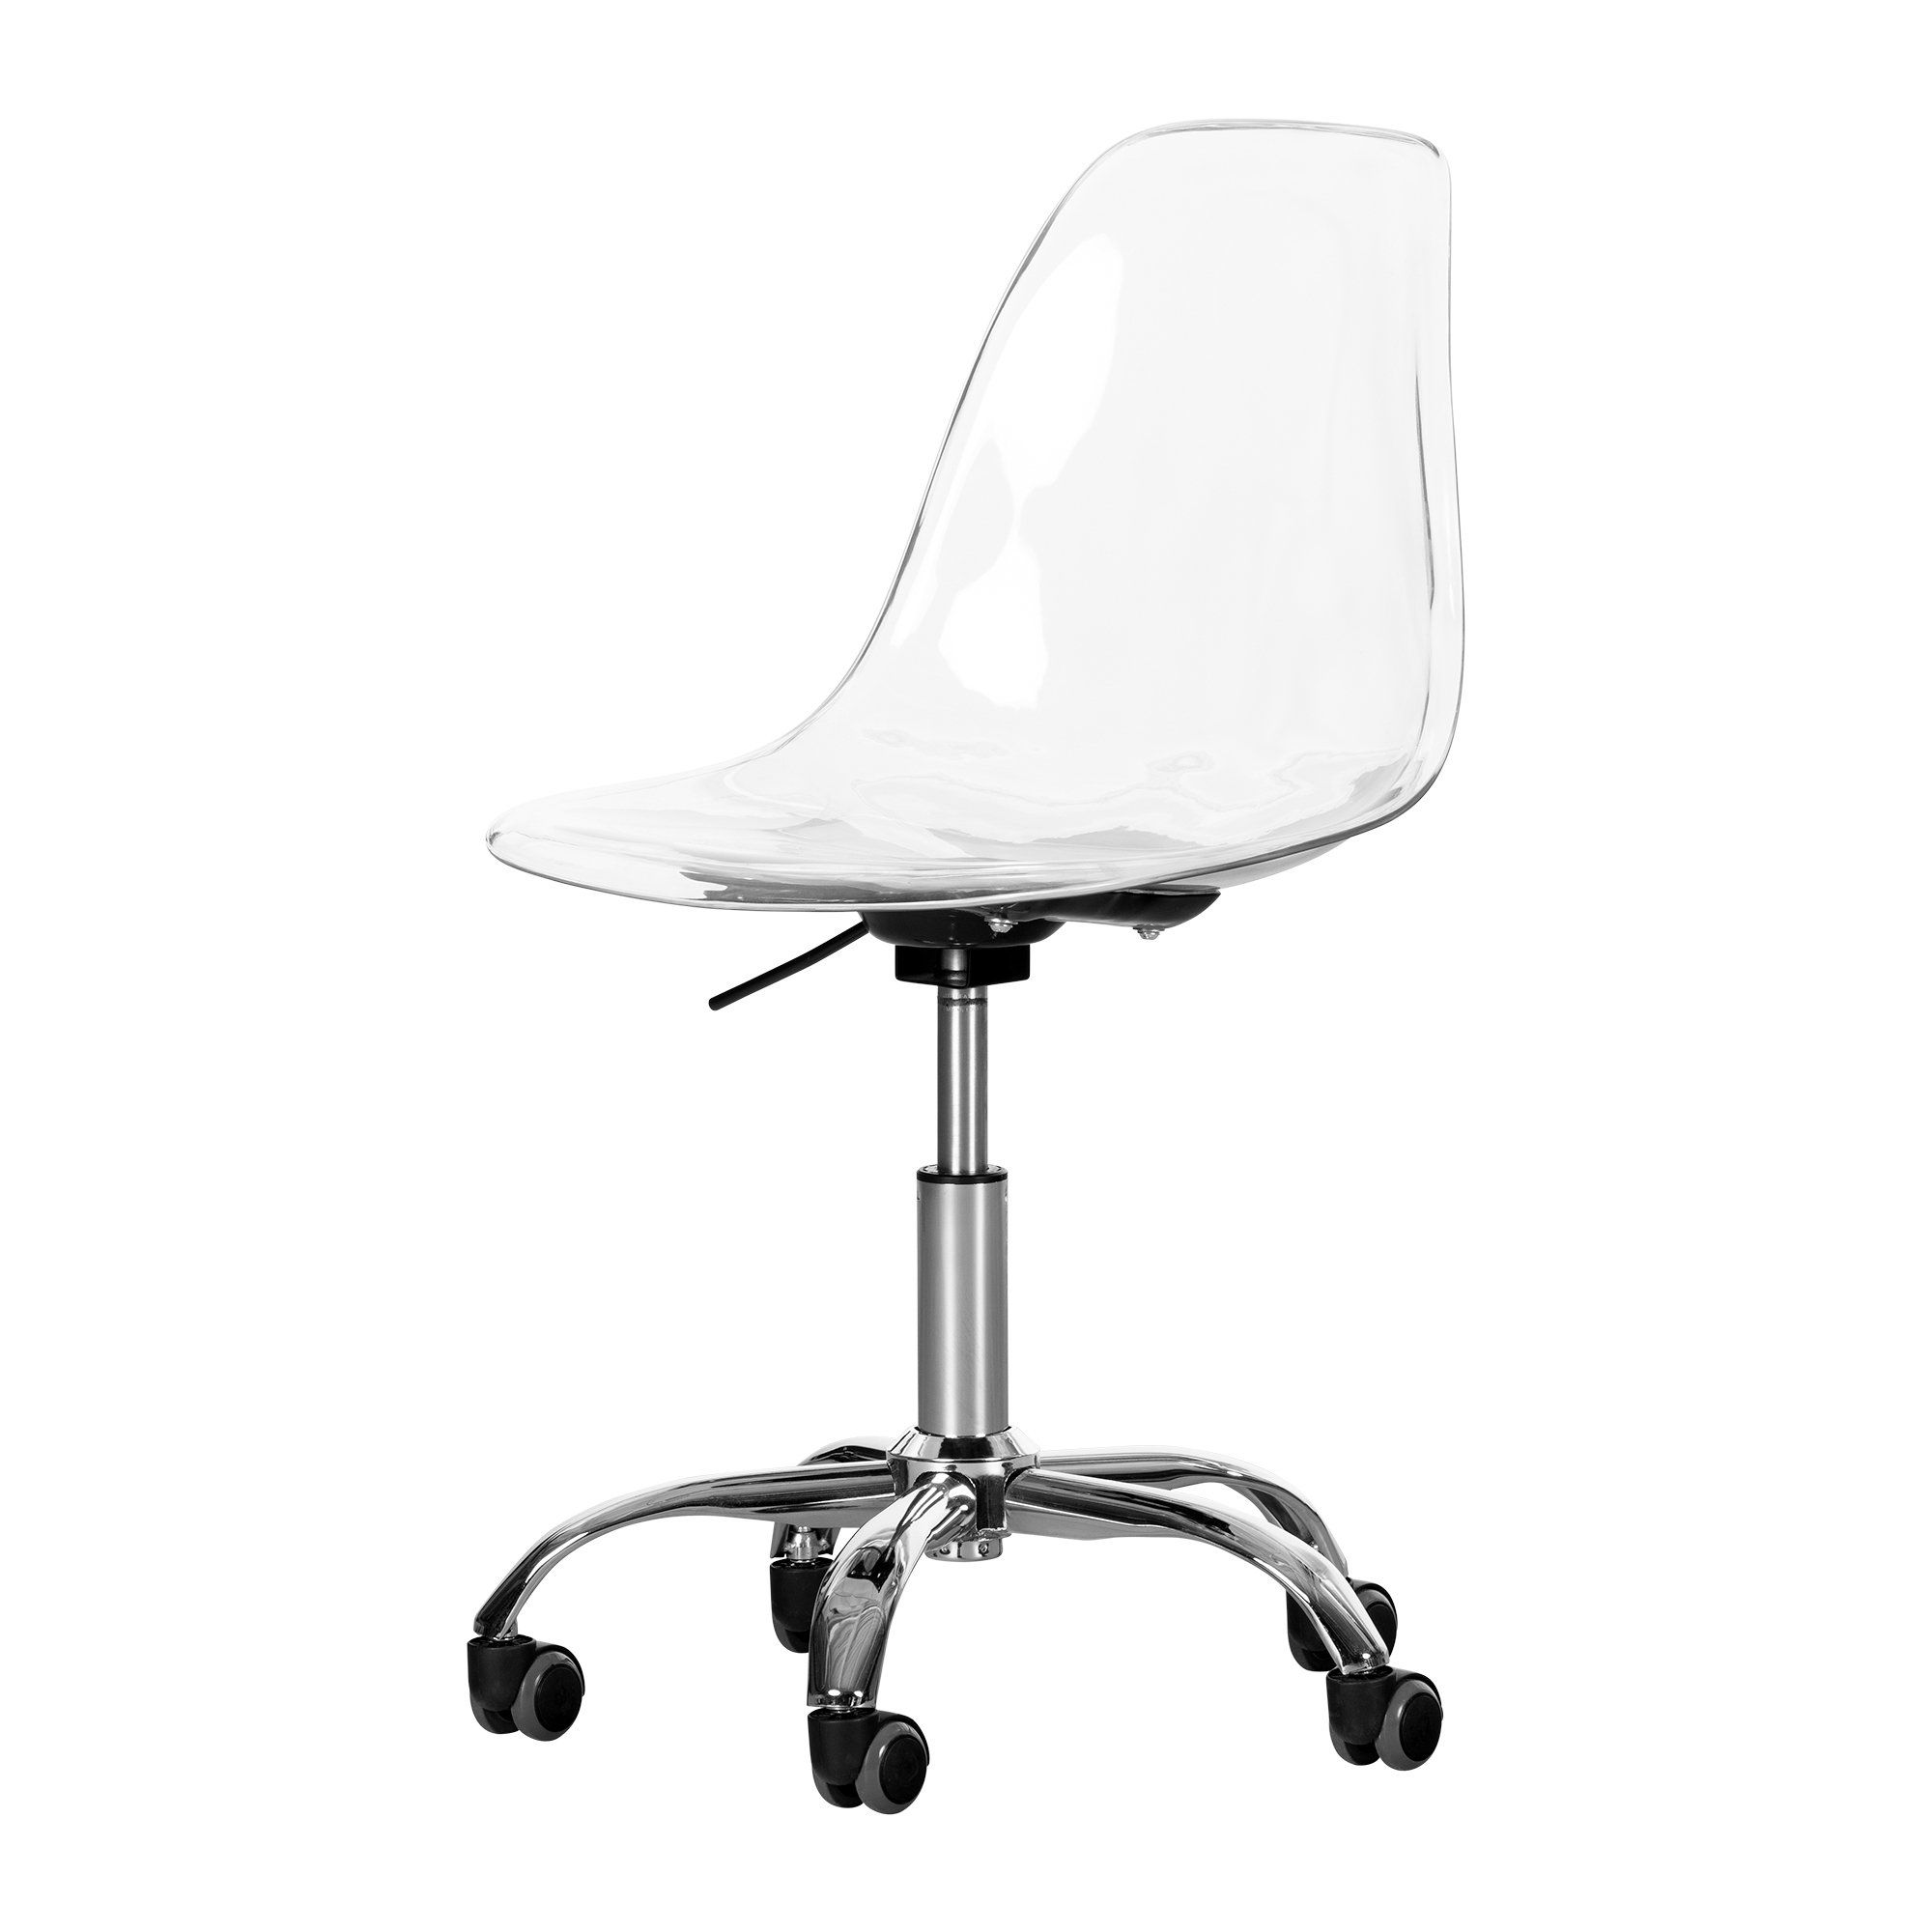 Contemporary Clear Office Chair Annexe Clear Office Chair Clear Chairs Acrylic Chair